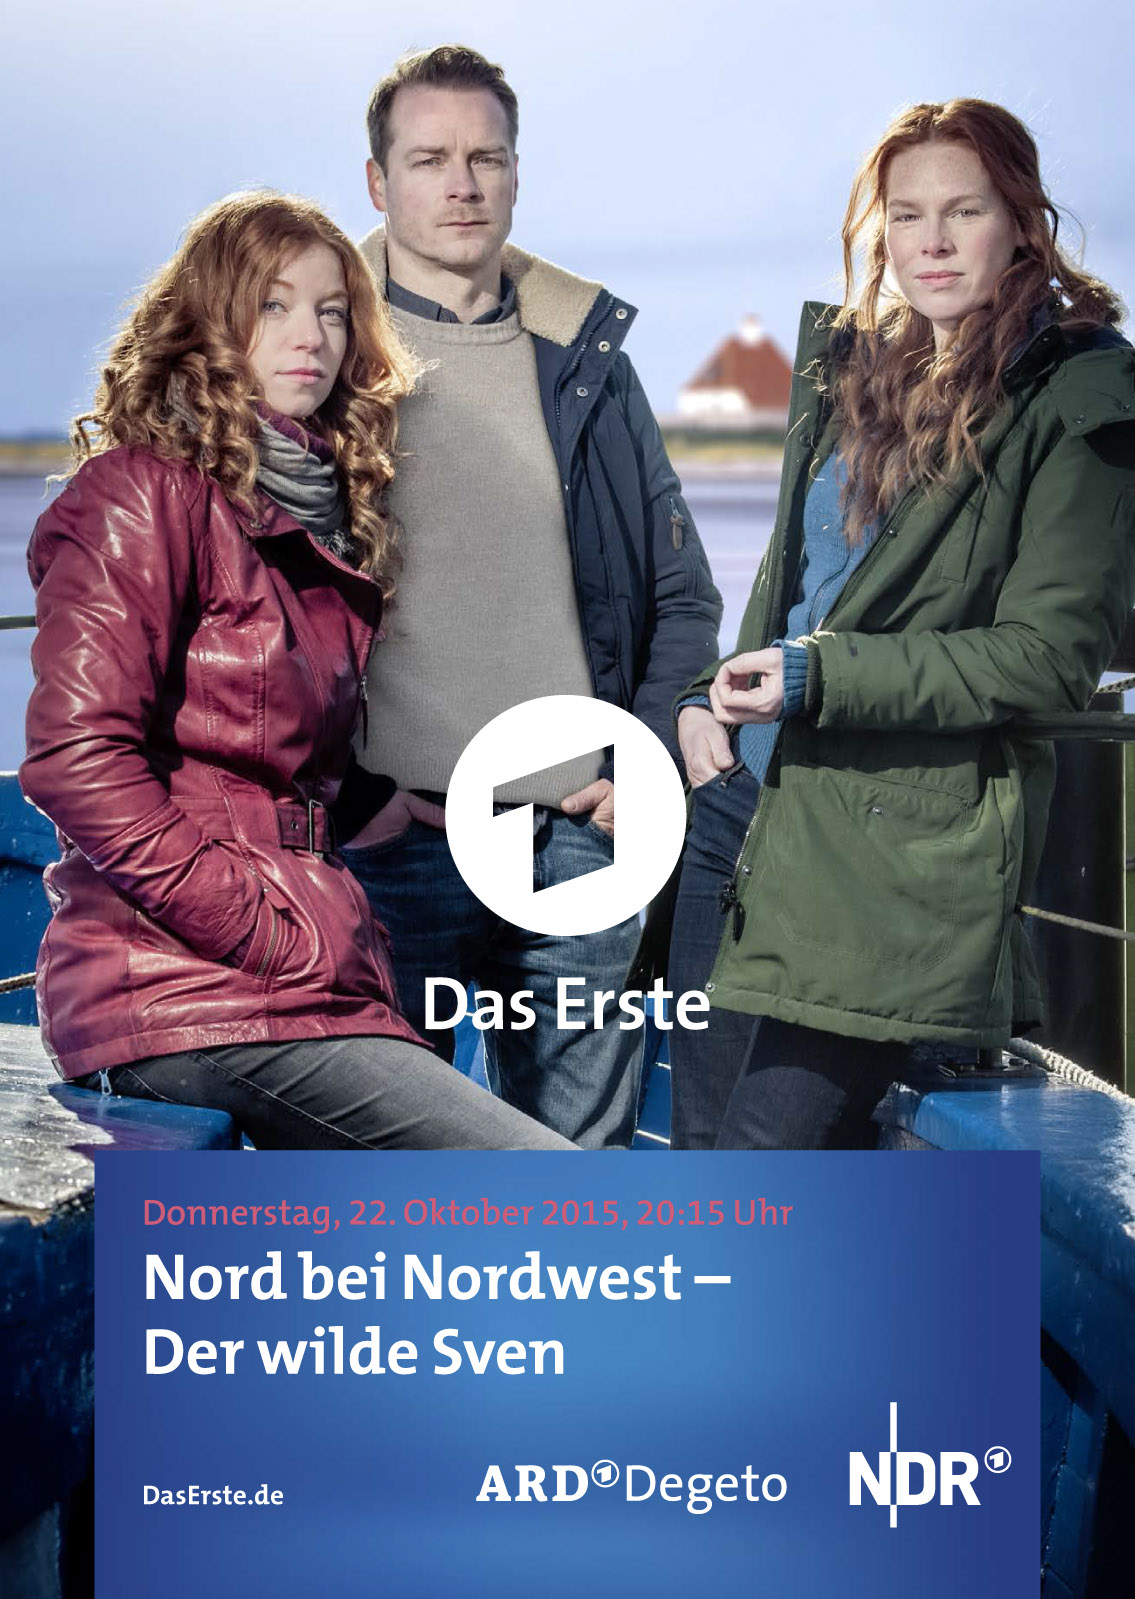 nord bei nordwest